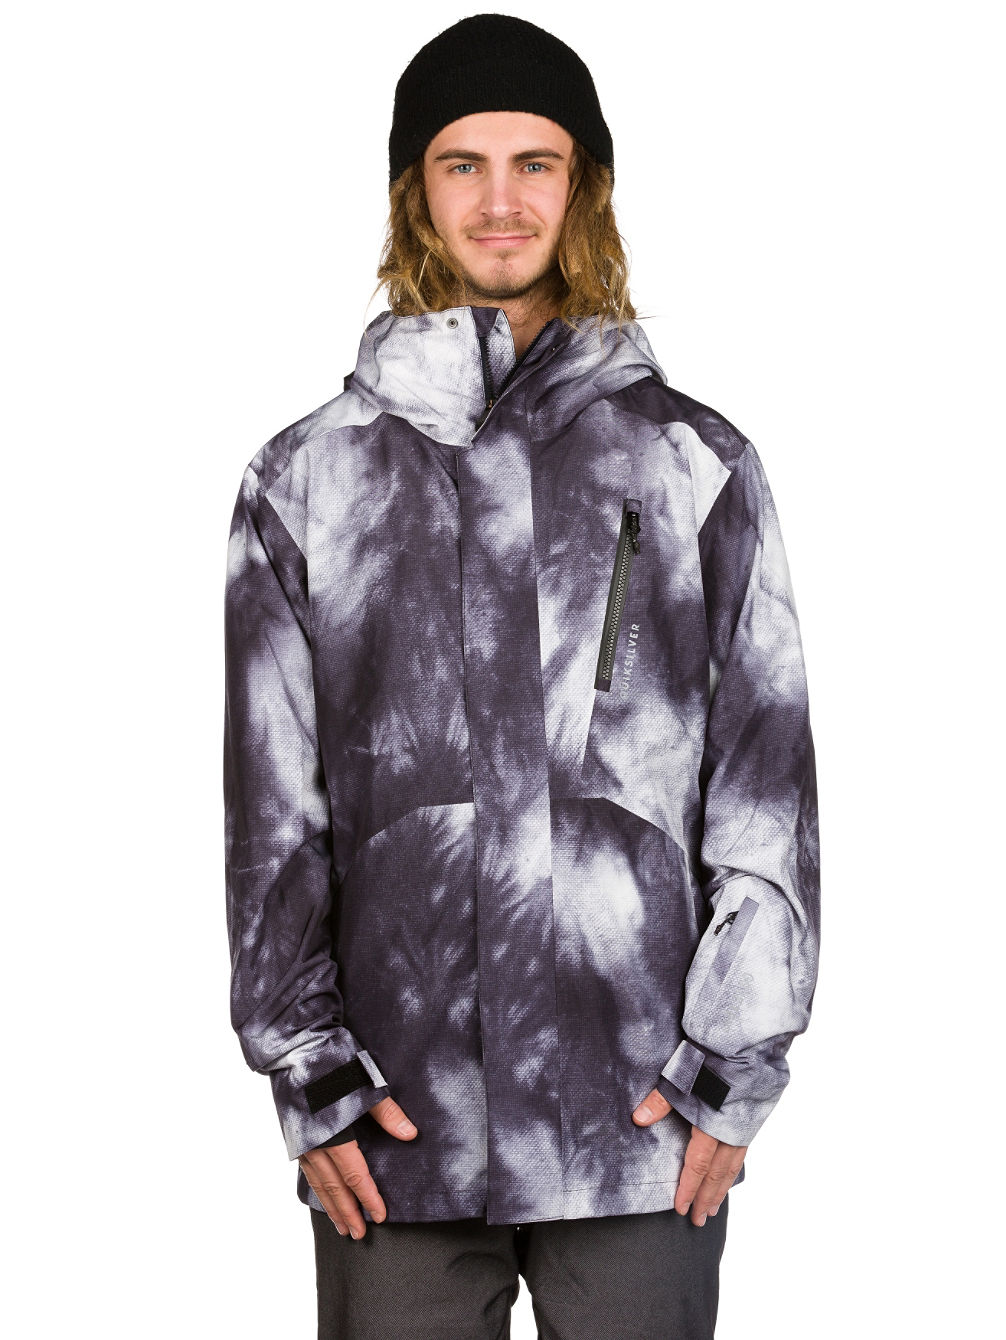 achetez quiksilver forever printed gore tex veste en ligne sur blue. Black Bedroom Furniture Sets. Home Design Ideas